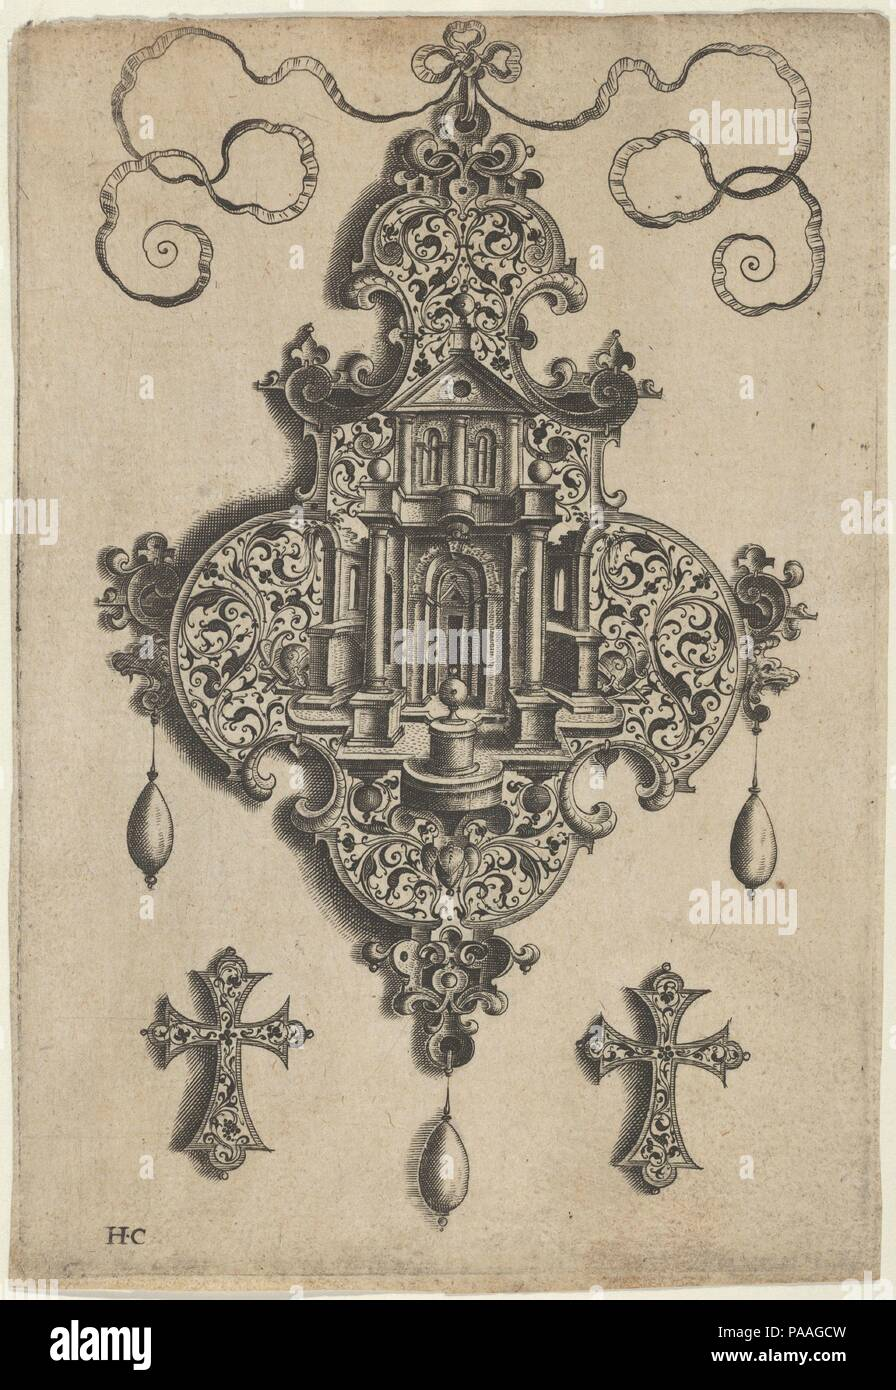 Pendant Design with a Temple and Vase Above Cross-Shaped Ornaments. Artist: Jan Collaert I (Netherlandish, Antwerp ca. 1530-1581 Antwerp). Dimensions: Sheet: 5 7/8 × 4 1/16 in. (14.9 × 10.3 cm). Publisher: published by Hans Liefrinck (Augsburg (?) 1518?-1573 Antwerp). Series/Portfolio: Pendant Designs with Architectural Elements and Vegetal-Arabesques. Date: before 1573.  Vertical panel with pendant design at center with the facade of a temple with a vase on a pedestal, with a vegetal-arabesque pattern. The pendant hangs from a ribbon and has three pearls descending below. At bottom left and r - Stock Image